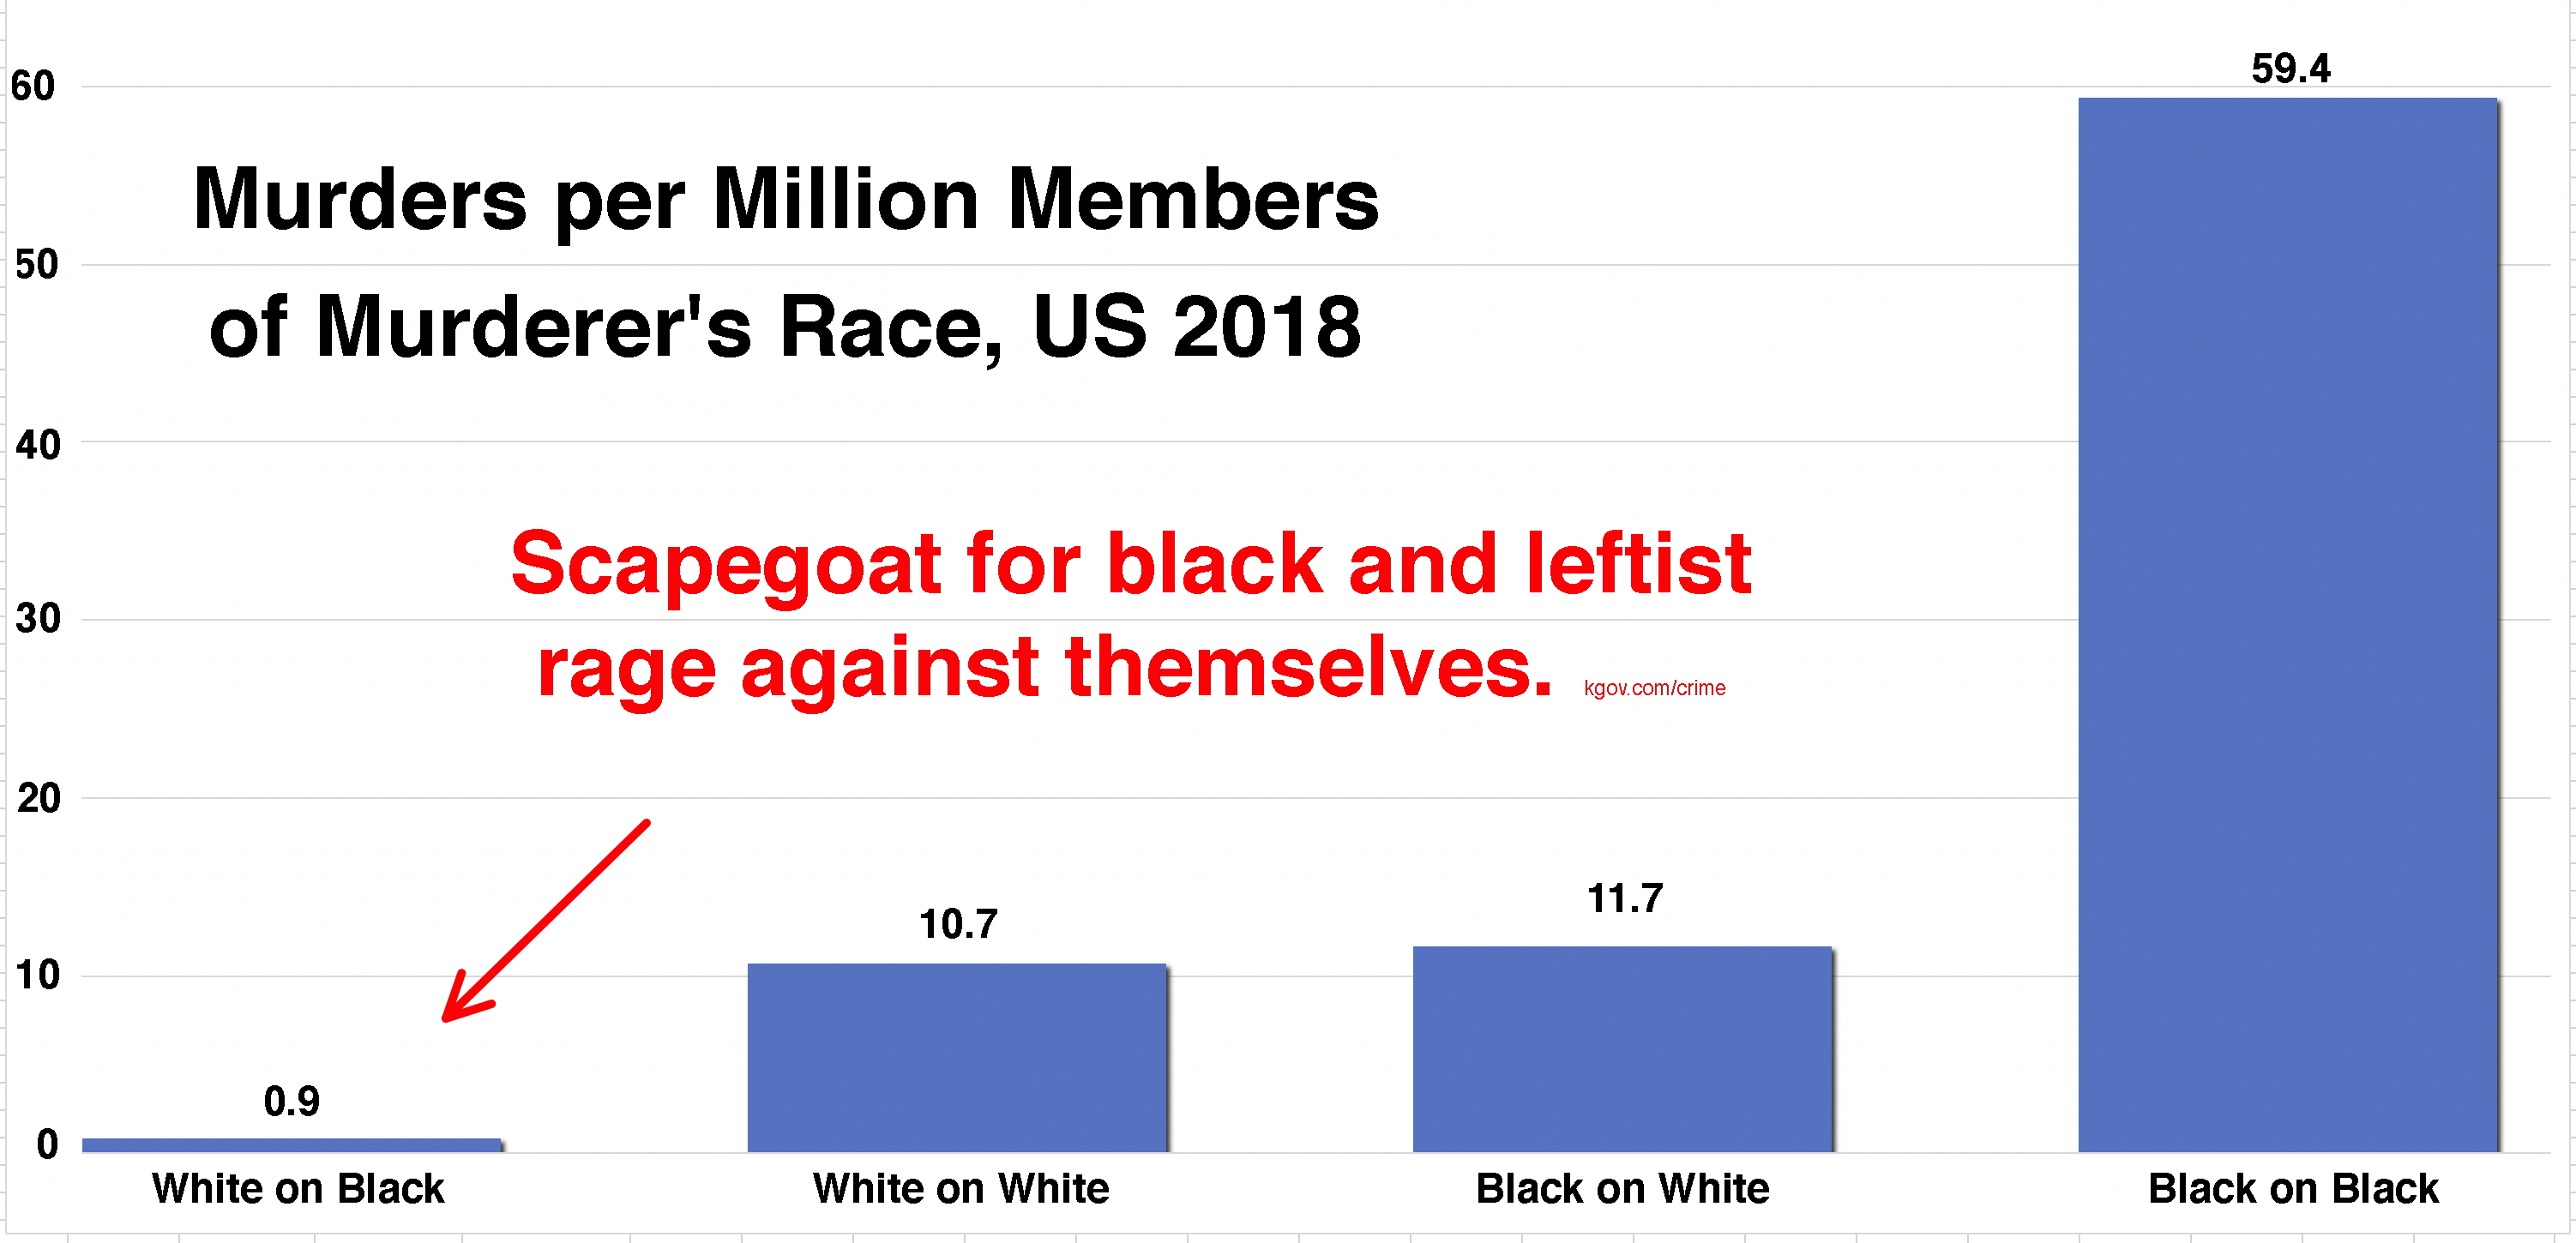 U.S. White vs Black murders 2018